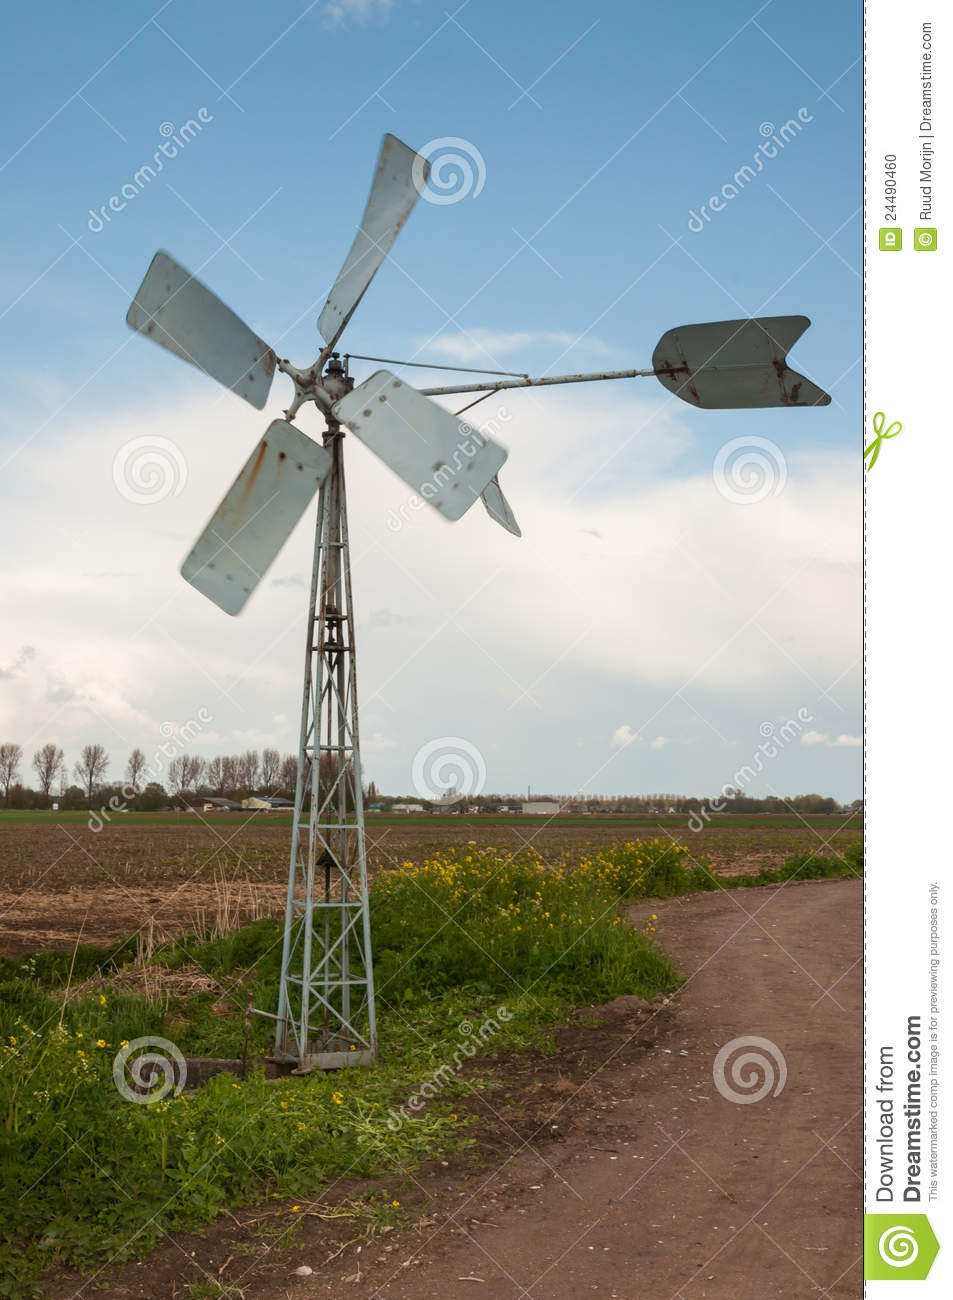 Images Of Old Fashioned Windmill Pumps